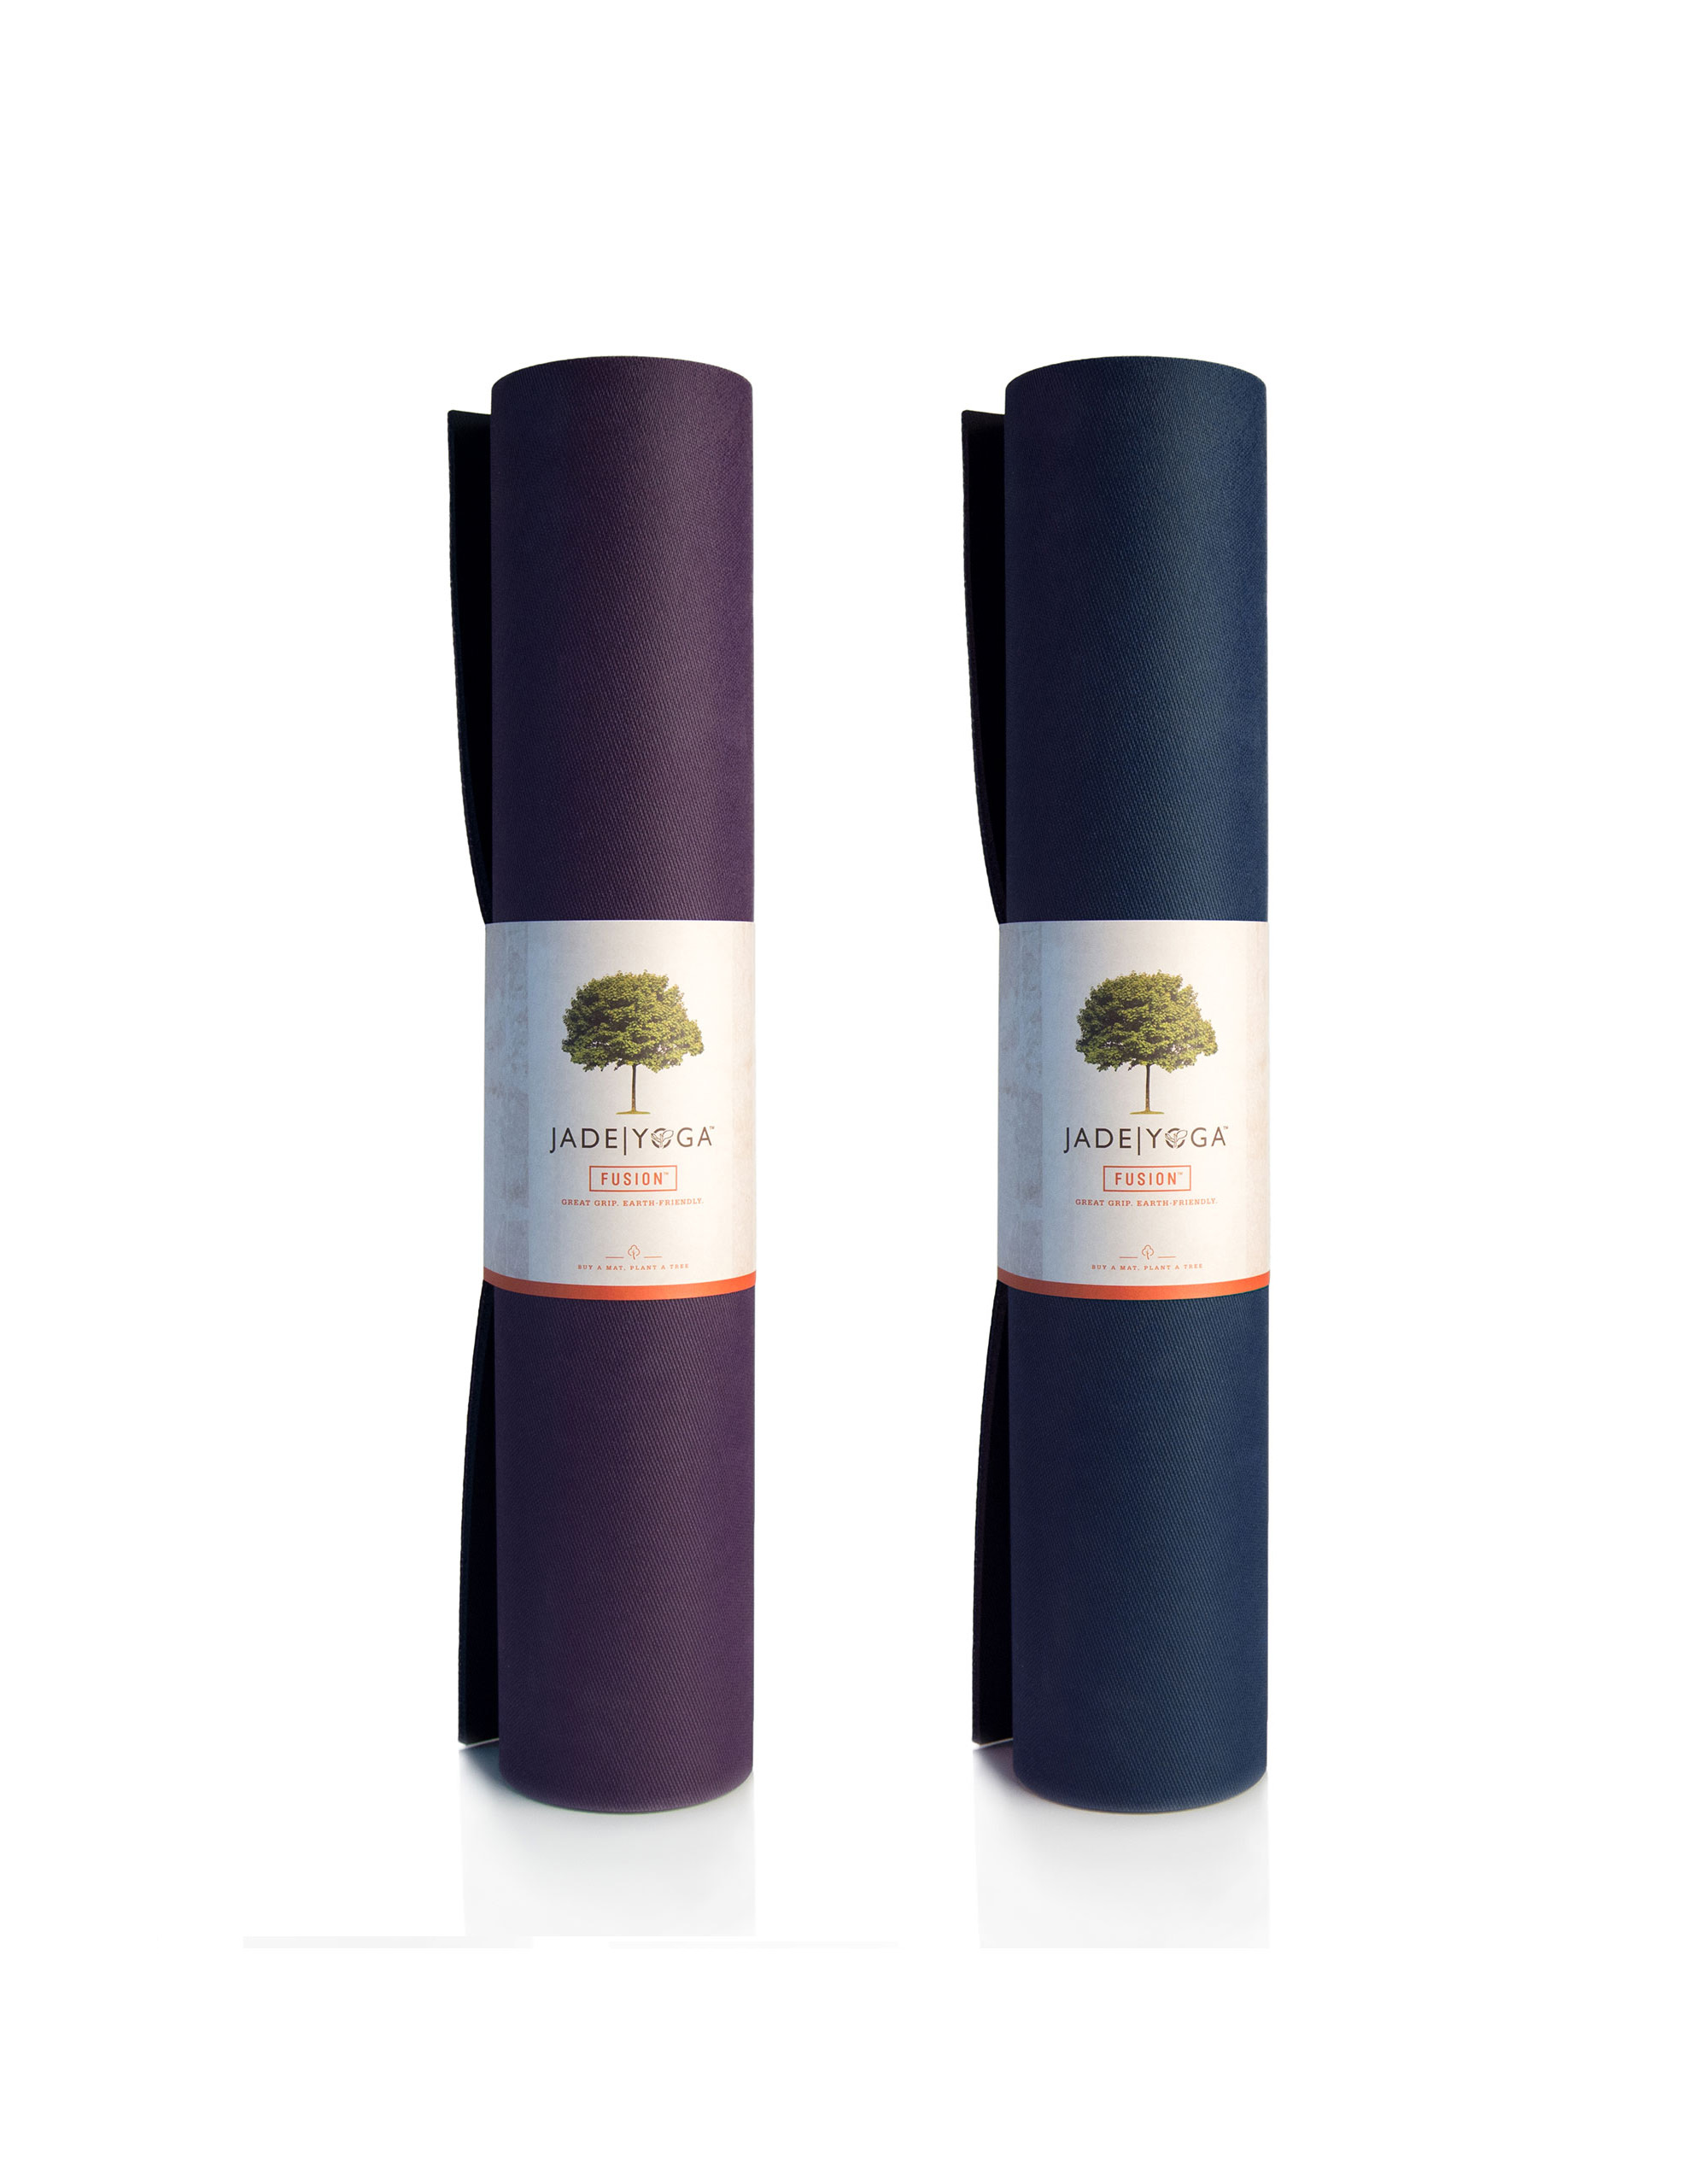 fashionably mats every a have grip comfort tree plants jade s colors organic magazine sold for eco beauty petite mat yoga in magazines come fun spa and friendly makes img fashionable incredible nyc